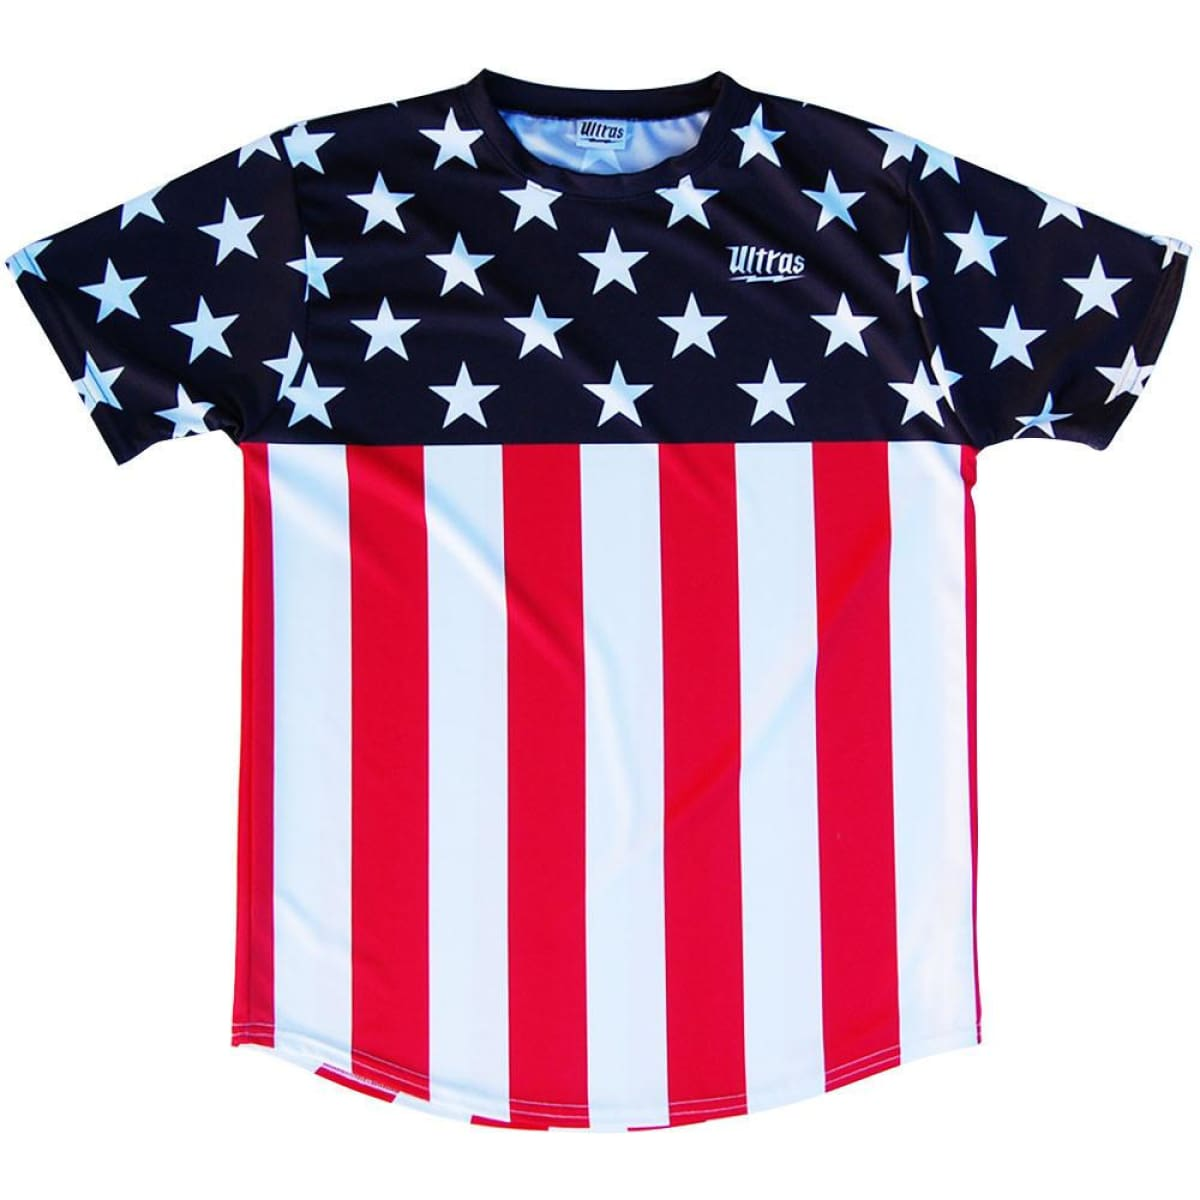 USA Ultras Stars and Stripes Soccer Jersey - Navy White Red / Youth X-Small / No - Ultras State Cup Soccer Jerseys